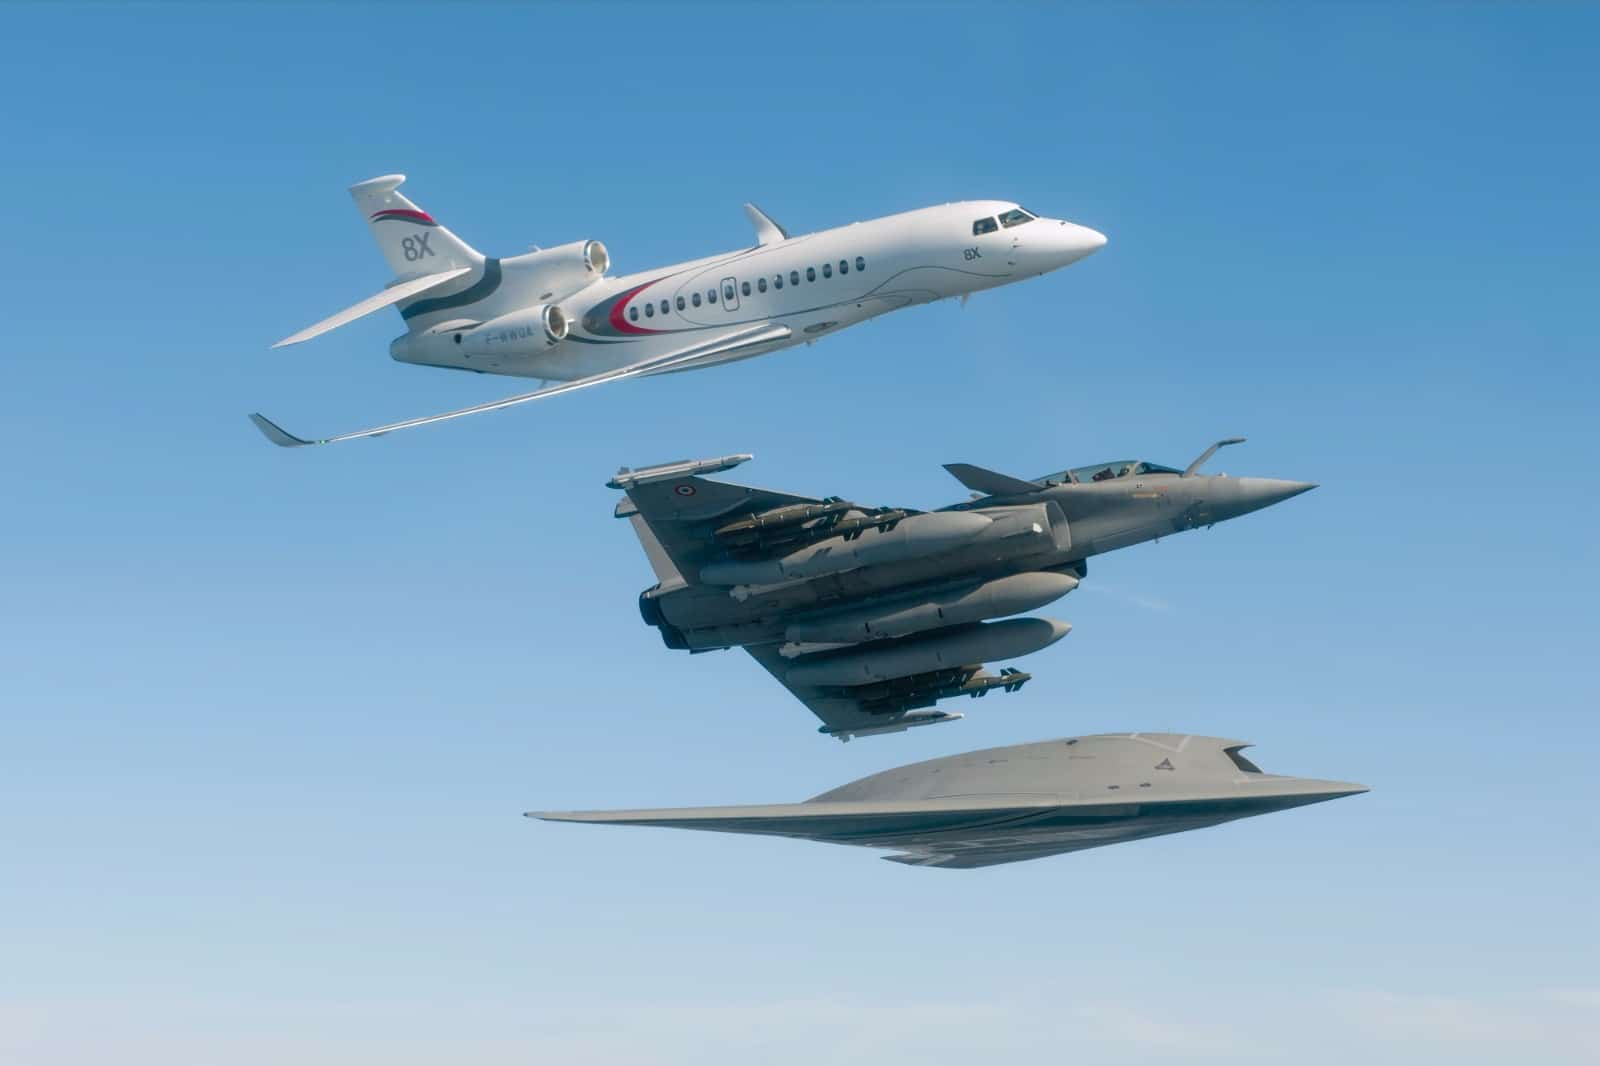 Array - dassault aviation a major player to aeronautics  rh   dassault aviation com